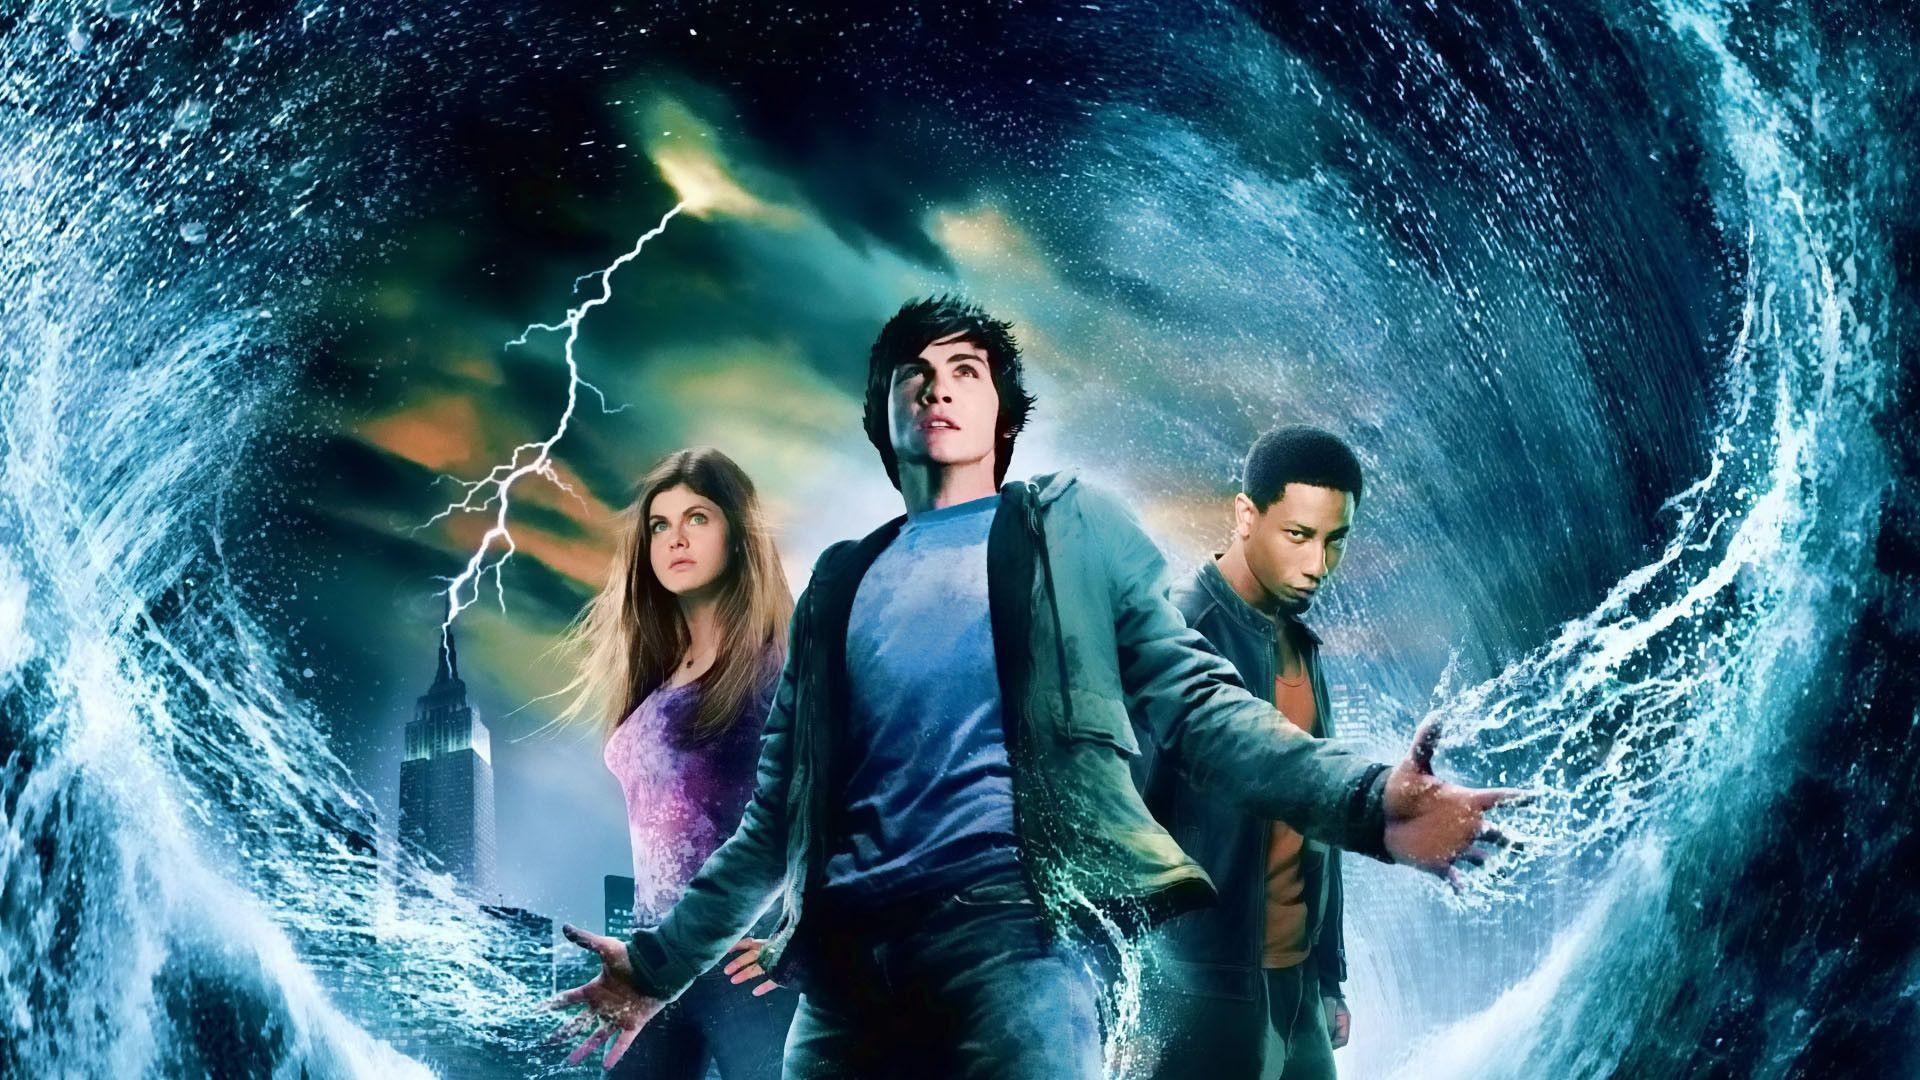 percy jackson wallpapers wallpaper cave